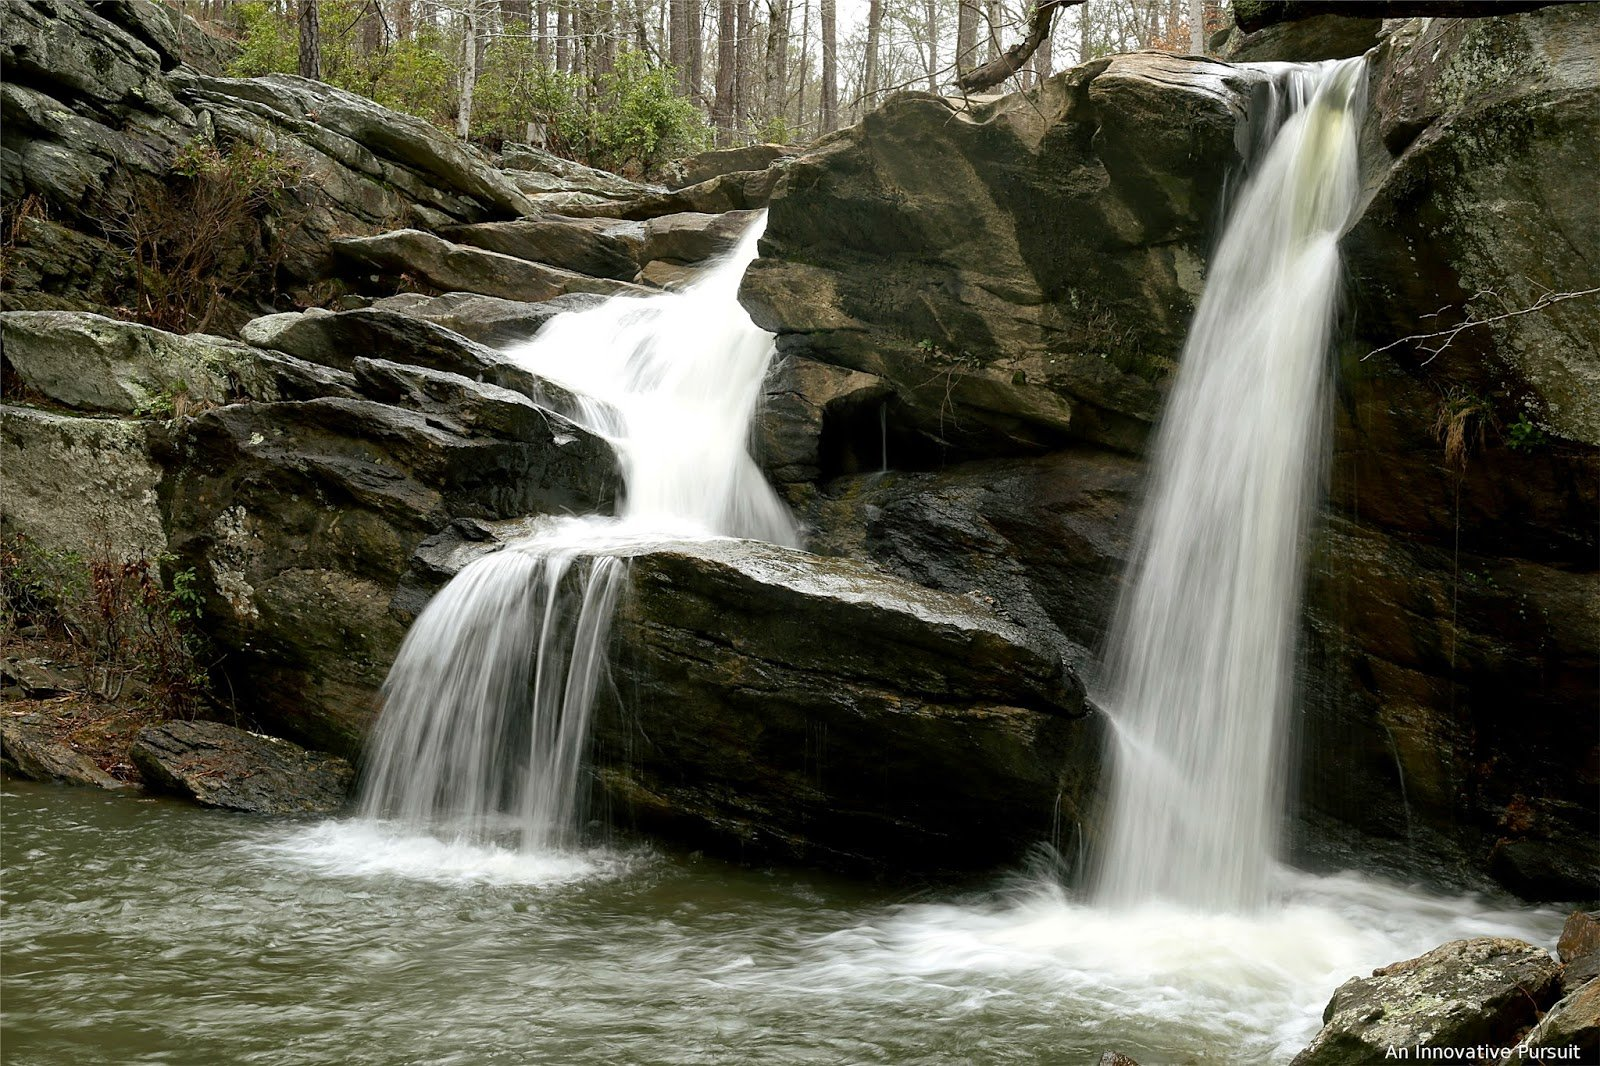 A 20-foot waterfall that spills from rocks along the Chinnabee Silent Trail.